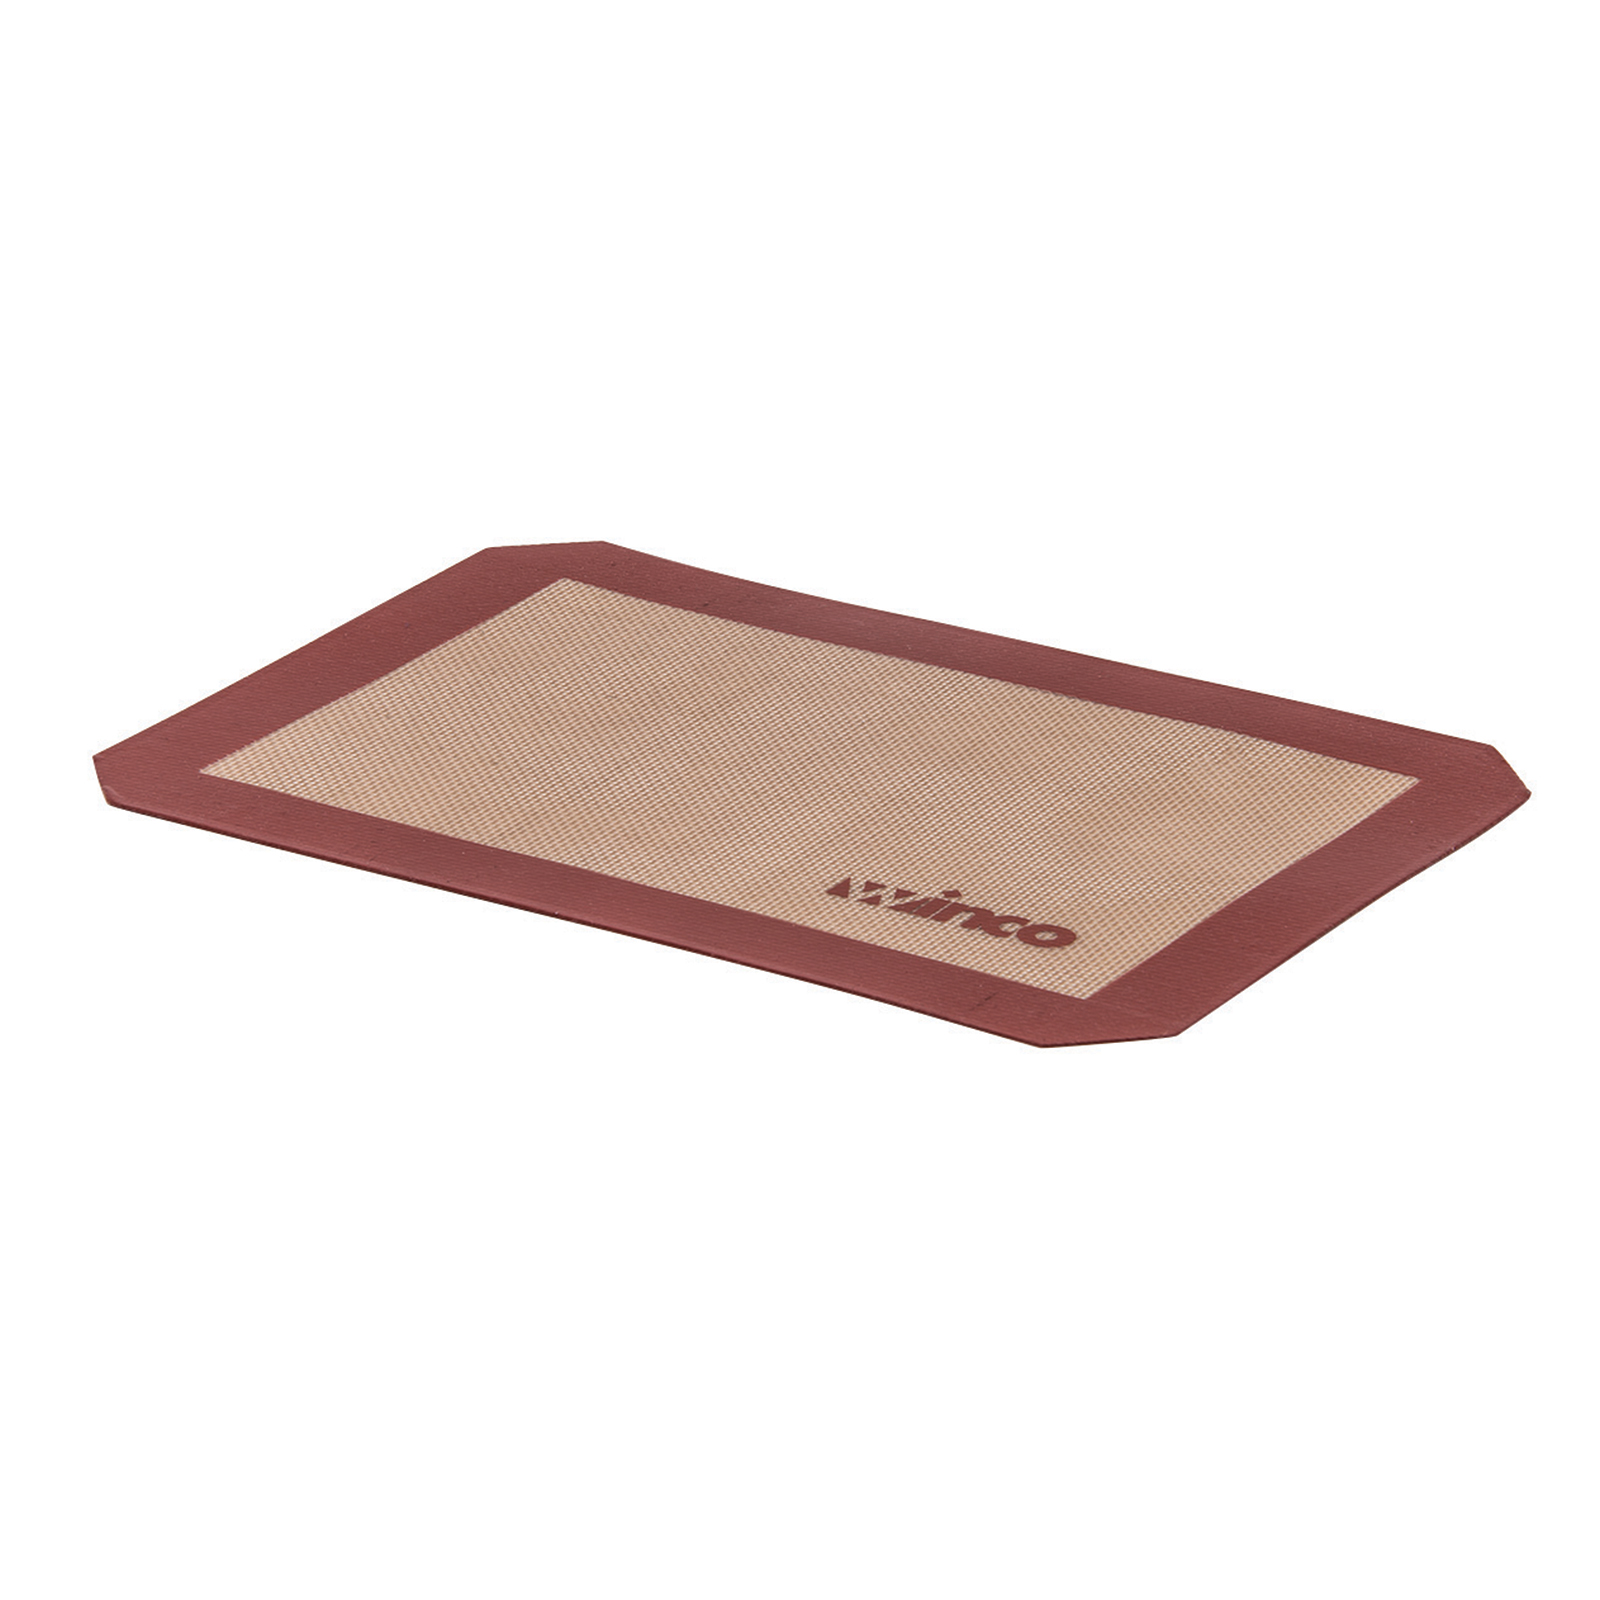 Winco SBS-16 baking mat